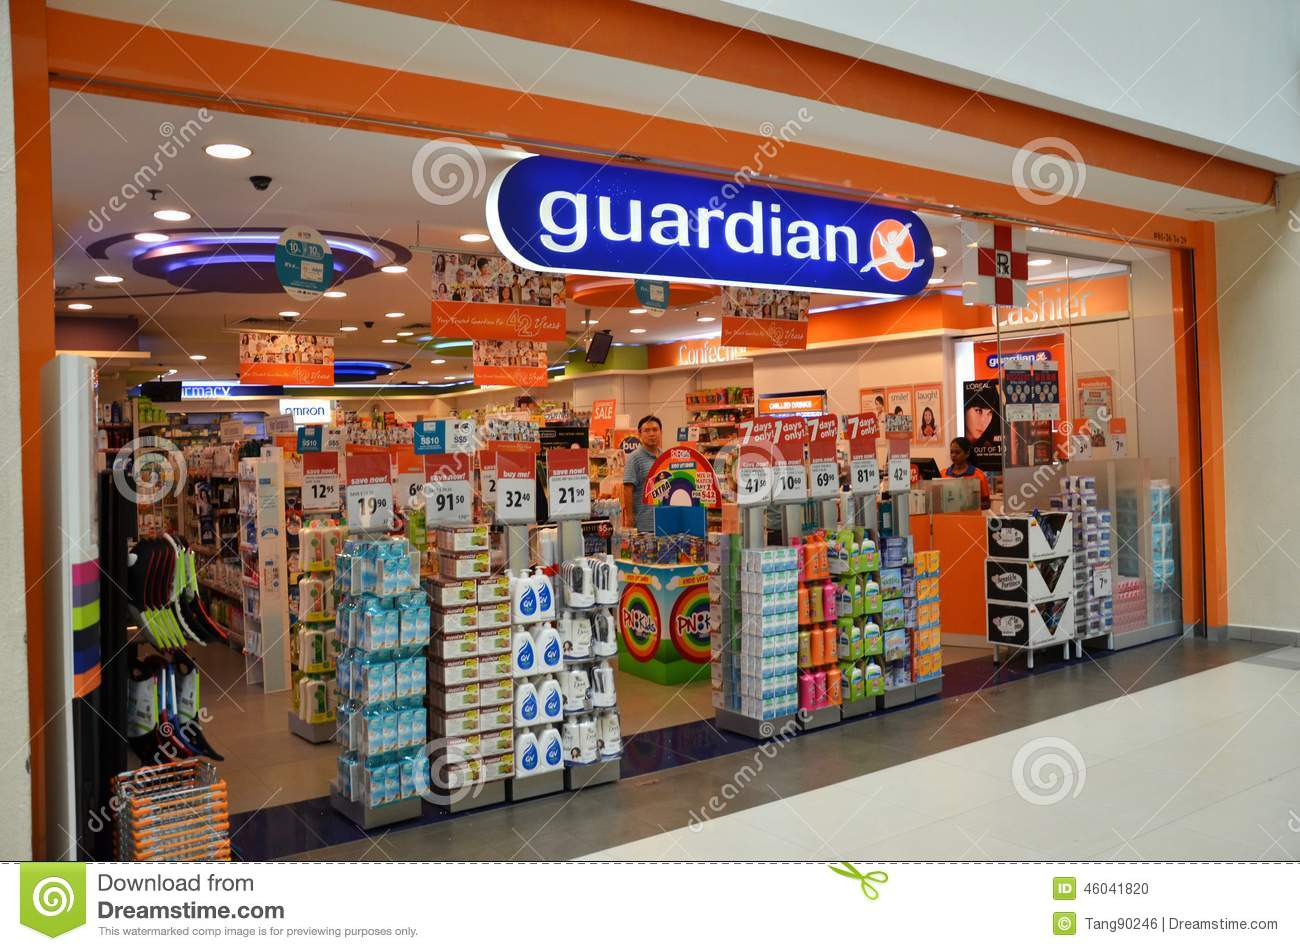 guardian pharmacy Guardian pharmacy free download - guardian pharmacy services, riverview guardian pharmacy, privacy guardian, and many more programs.